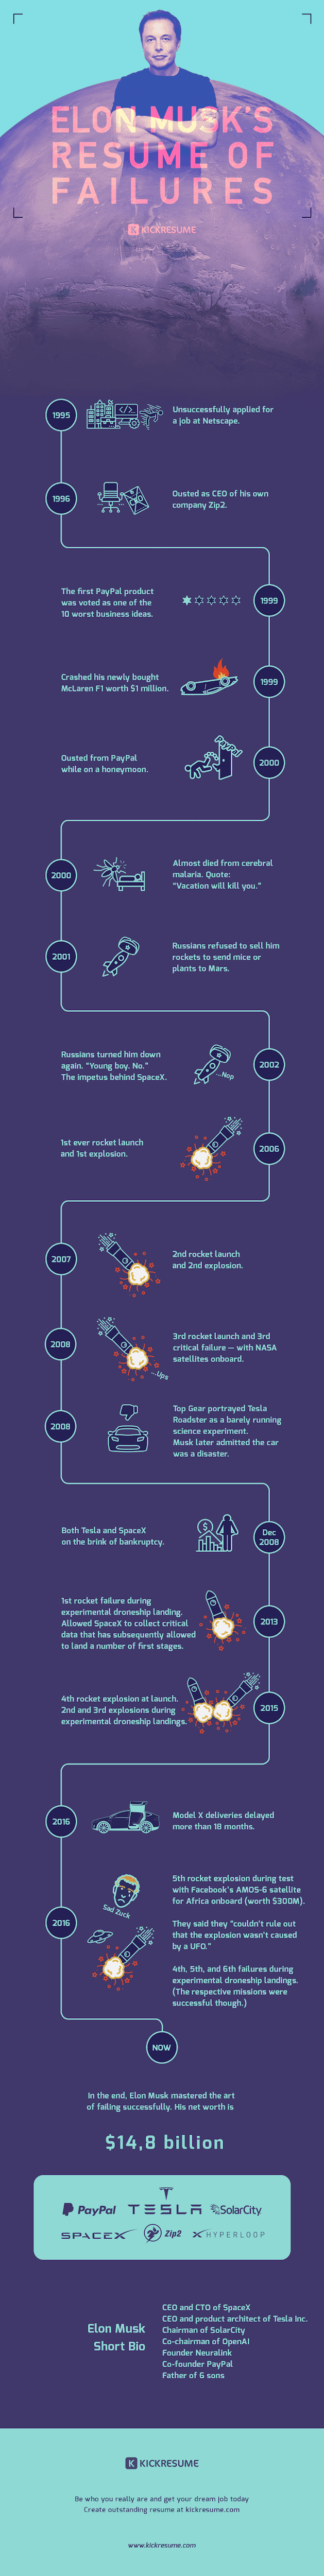 Elon Musk's Resume of Failures #infographic #Success #Resume of Failures #Failures #Elon Musk